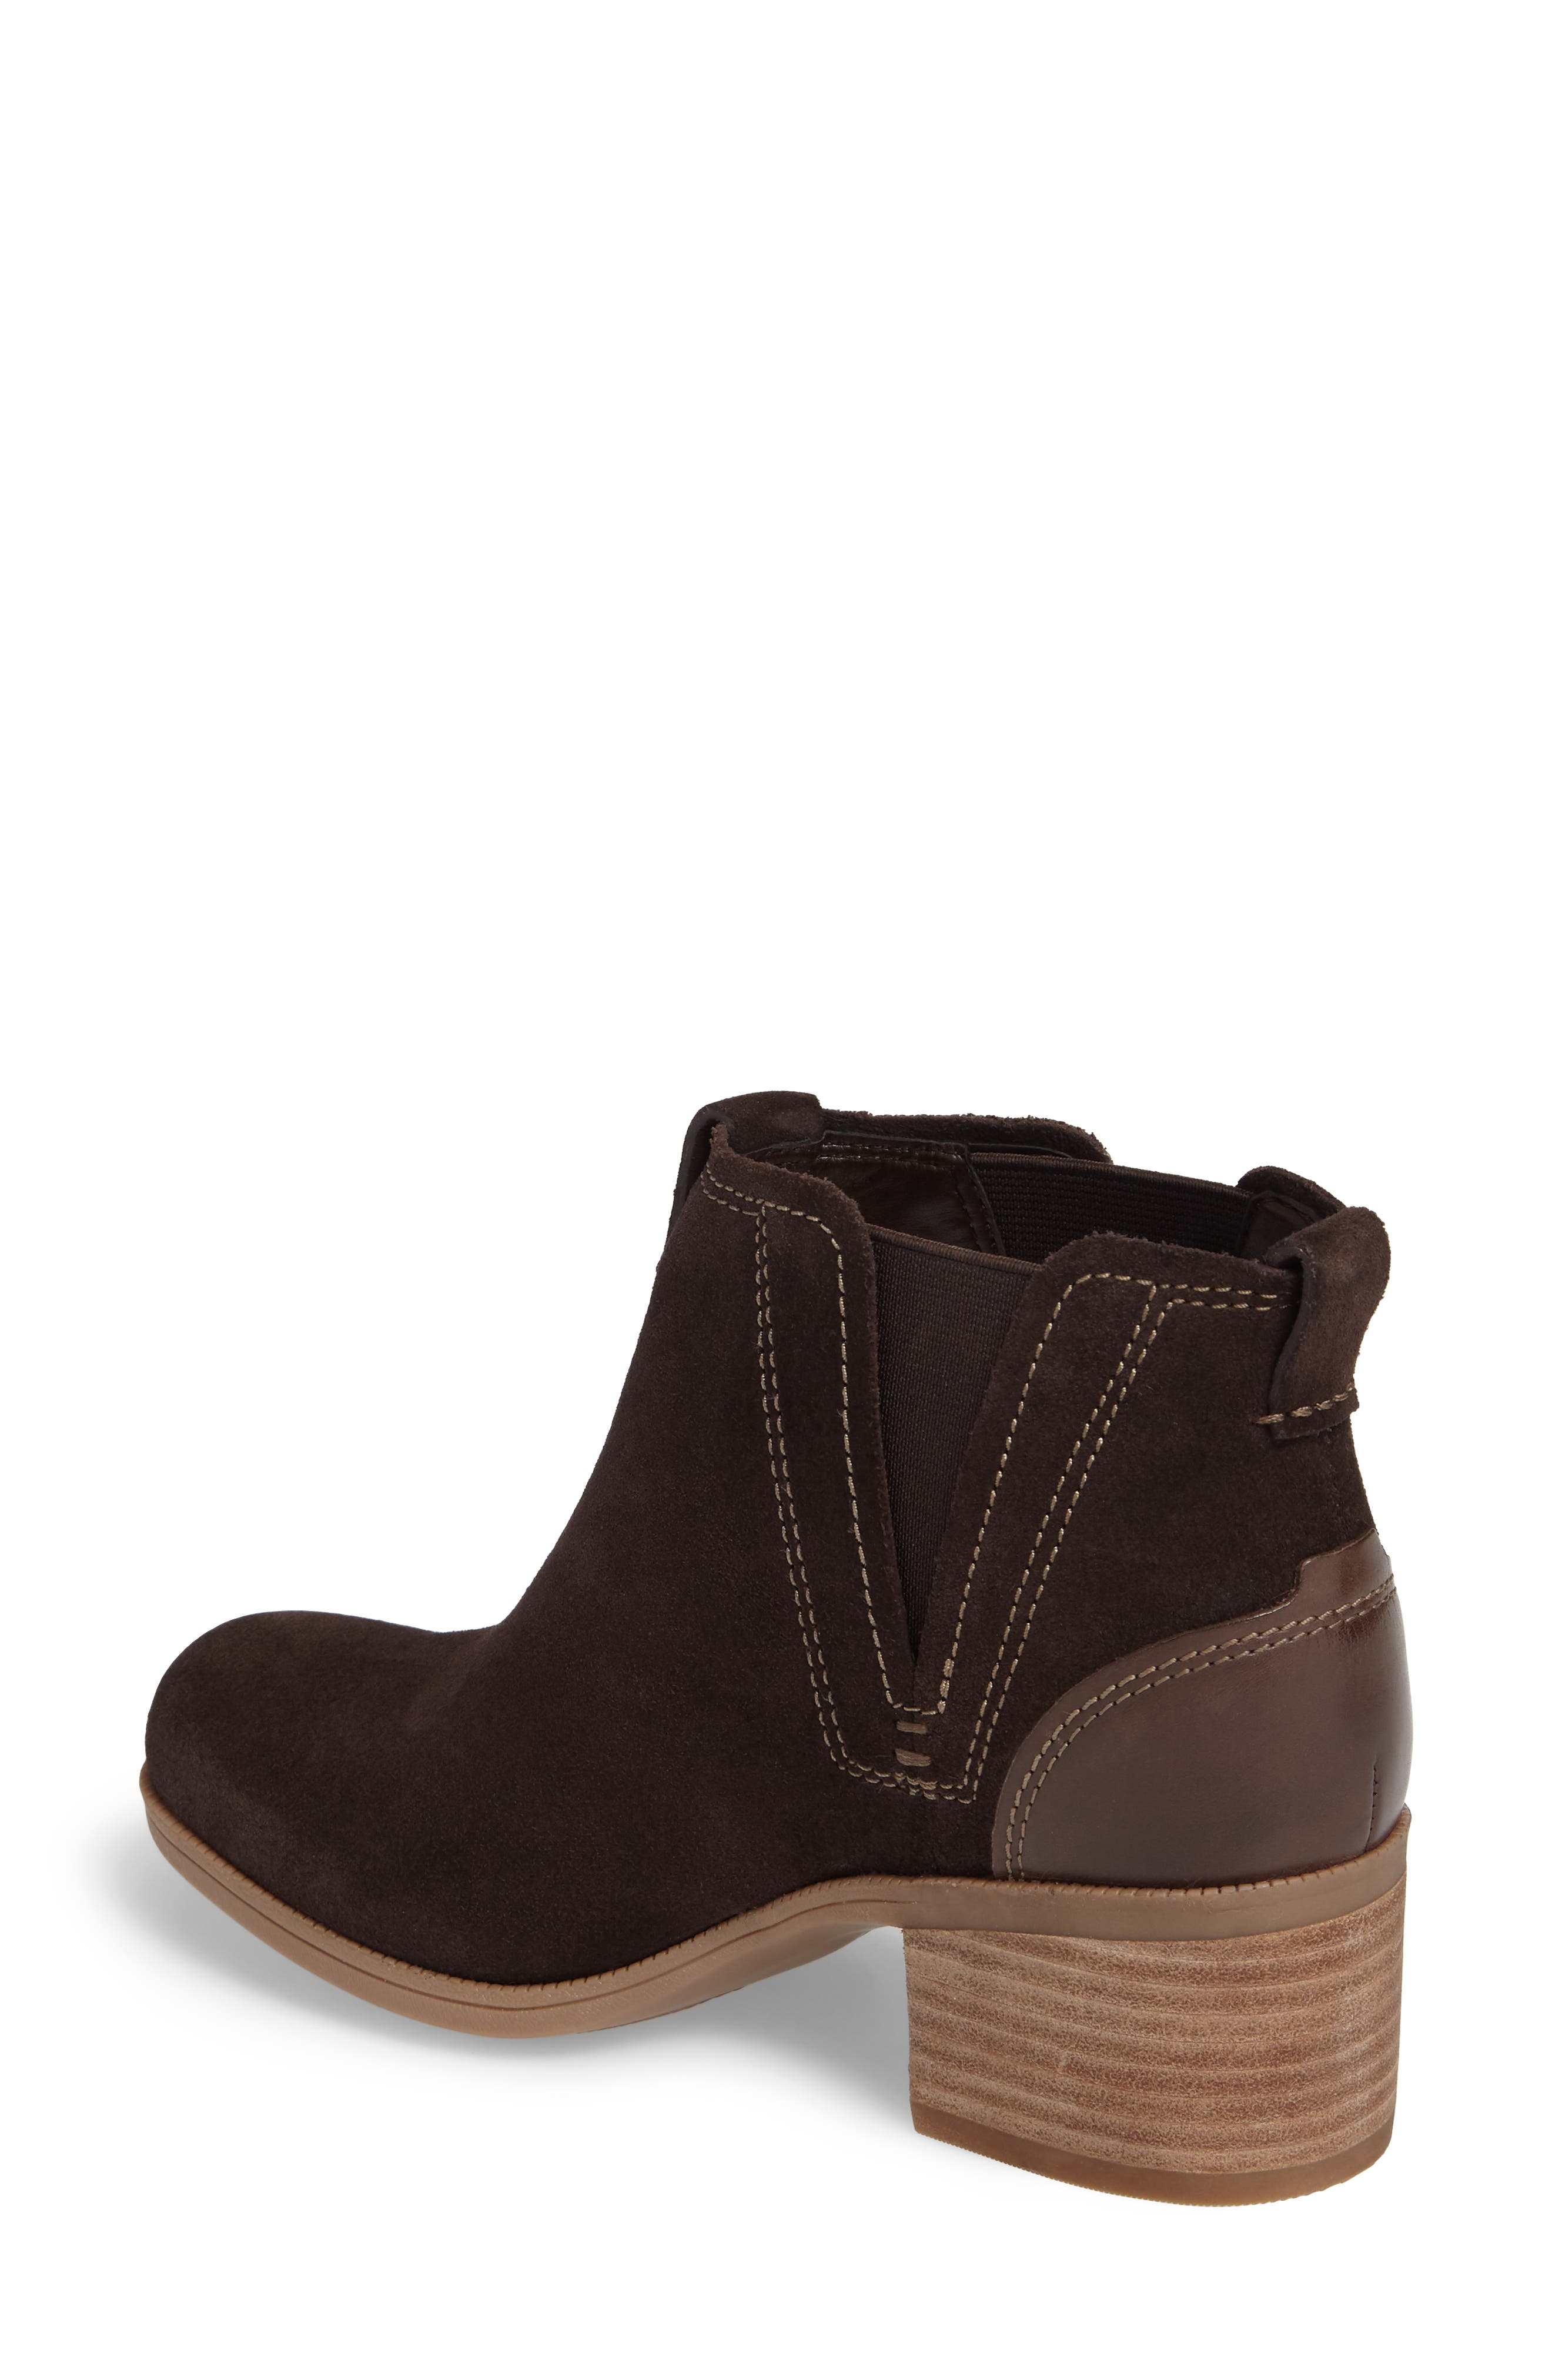 Maypearl Daisy Bootie,                             Alternate thumbnail 5, color,